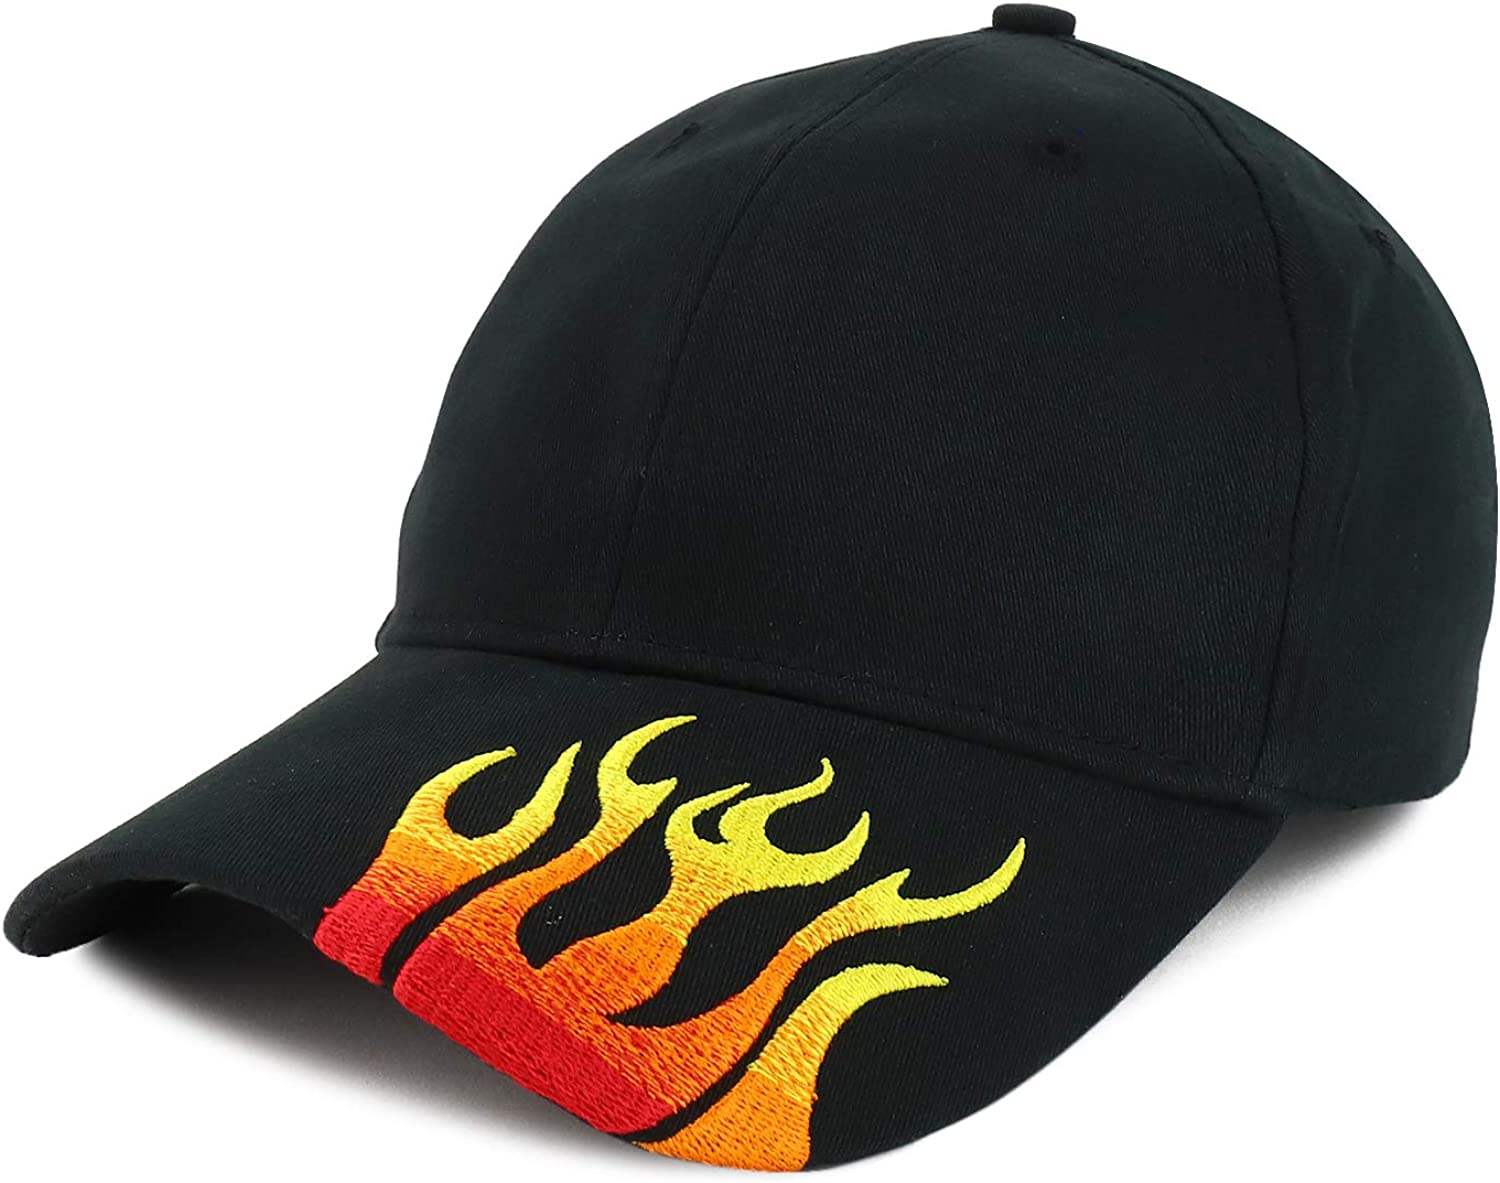 Armycrew Fire Flame Embroidered Bill B Brushed Structured Cotton Super special Max 59% OFF price